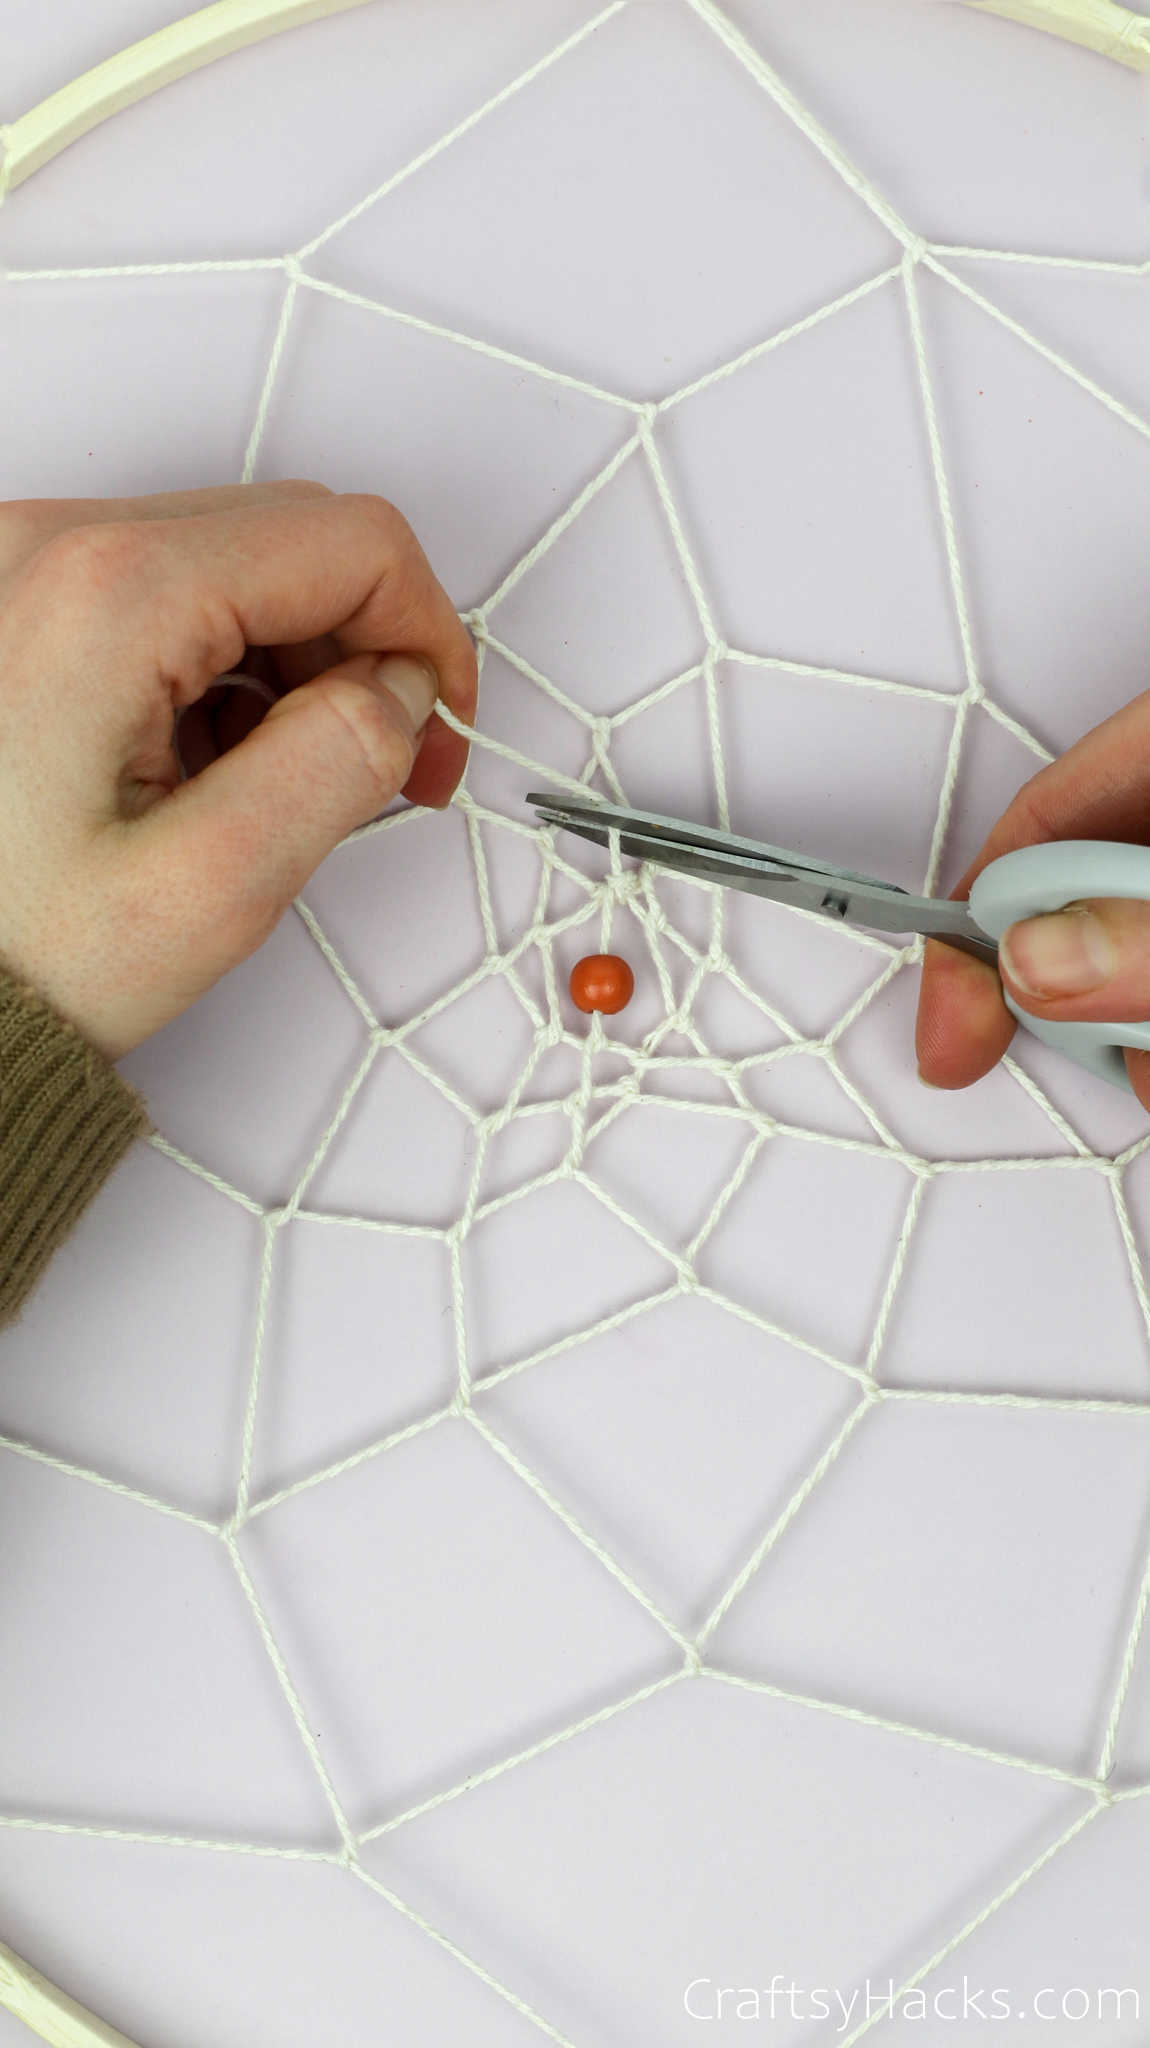 cutting end of string